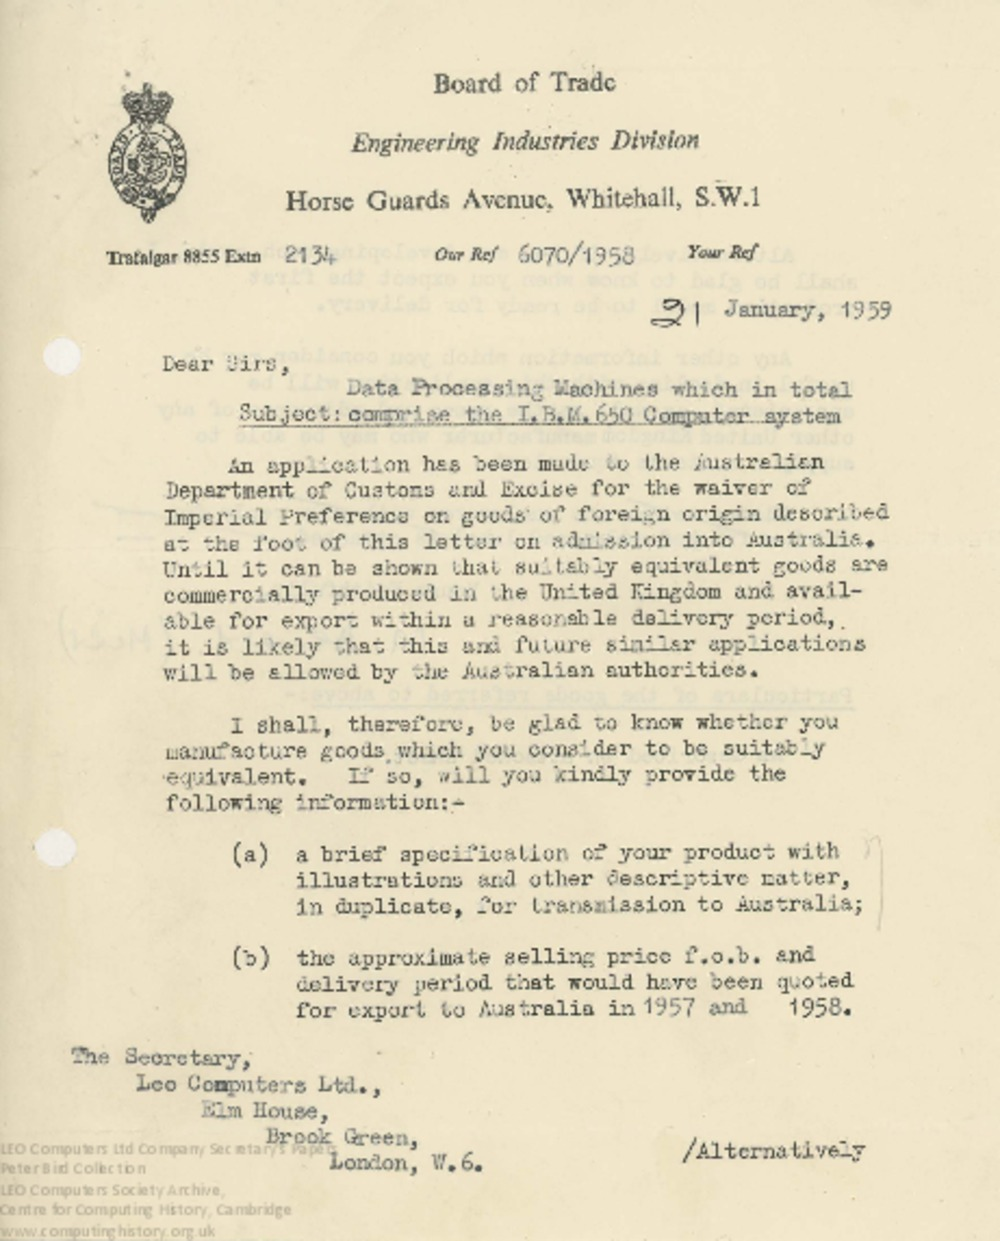 Article: 62460  Correspondence with the Board of Trade concerning waiving of 'Imperial Preference' for IBM equipment imported into Australia, Jan 1959